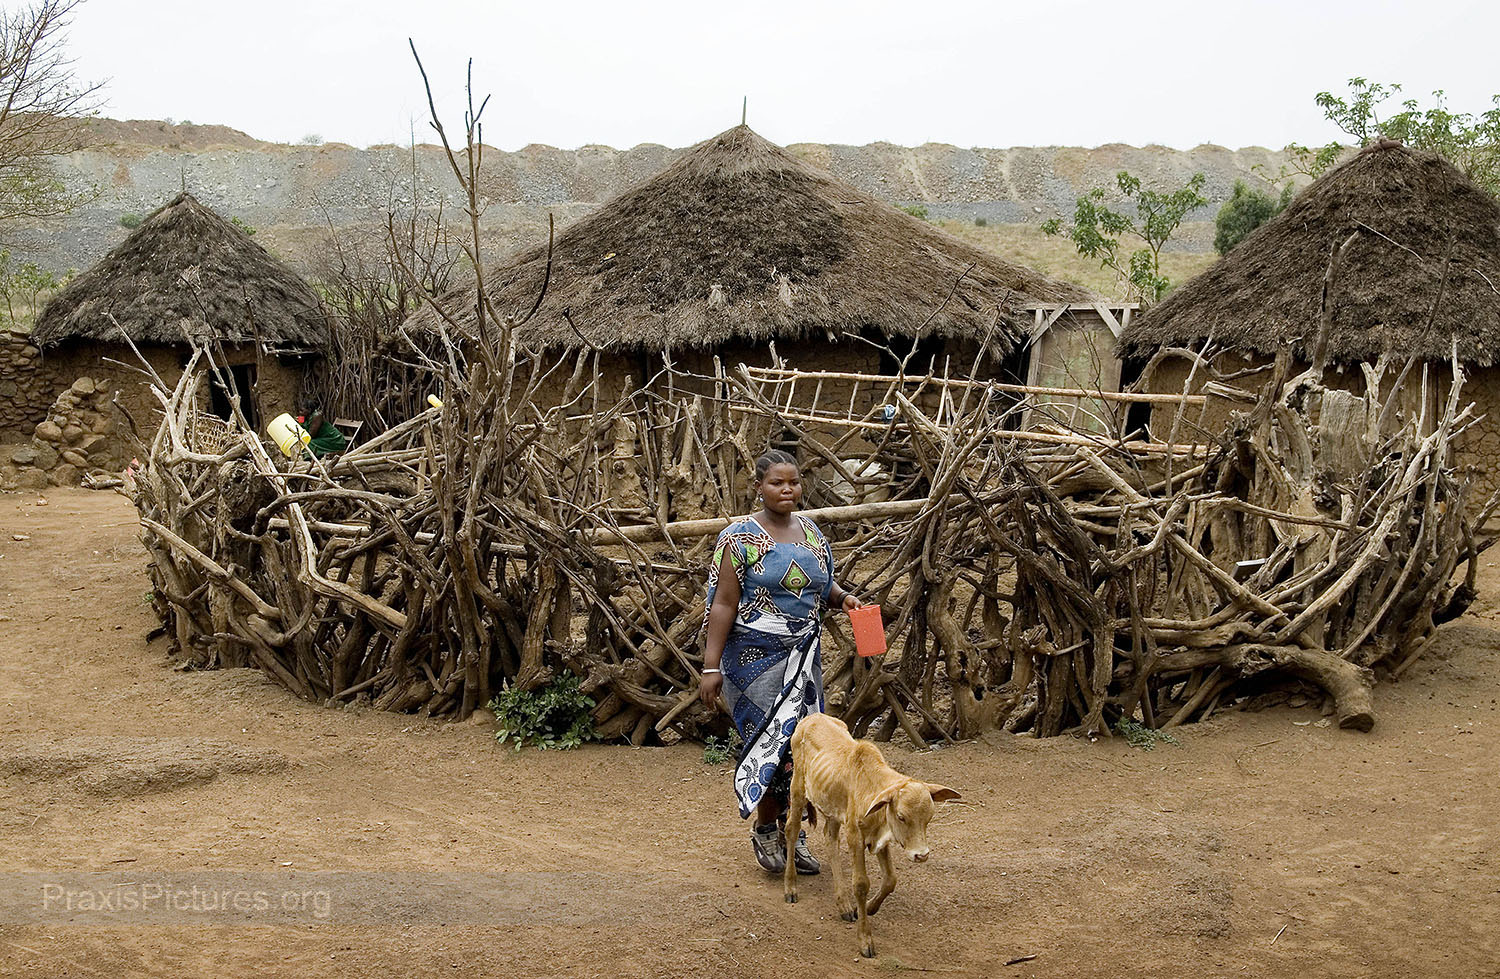 "MWITA - The Mwita family lives in Nyamongo next to Barrick's North Mara gold mine. The waste rock on the edge of the mining pit can be seen just behind their huts here.  Ongoing violent conflict between the mine and local communities have created a climate of fear for those who live nearby. Since the mine opened in 2002, the Mwita family say that they live in a state of constant anxiety because they have been repeatedly harassed and intimidated by the mine's private security forces and by government police. There have been several deadly confrontations in the area and every time there are problems at the mine, the Mwita family say their compound is the first place the police come looking. During police operations the family scatters in fear to hide in the bush,  ""like fugitives,""  for weeks at a time waiting for the situation to calm down.   ""We had never experienced poverty before the mine came here.""  They used to farm and raise livestock,  ""but now there are no pastures because the mine has almost taken the whole land … we have no sources of income and we are living only through God's wishes.""  They say they would like to be relocated, but the application process has been complicated, and they feel the amount of compensation they have been offered is  ""candy."""